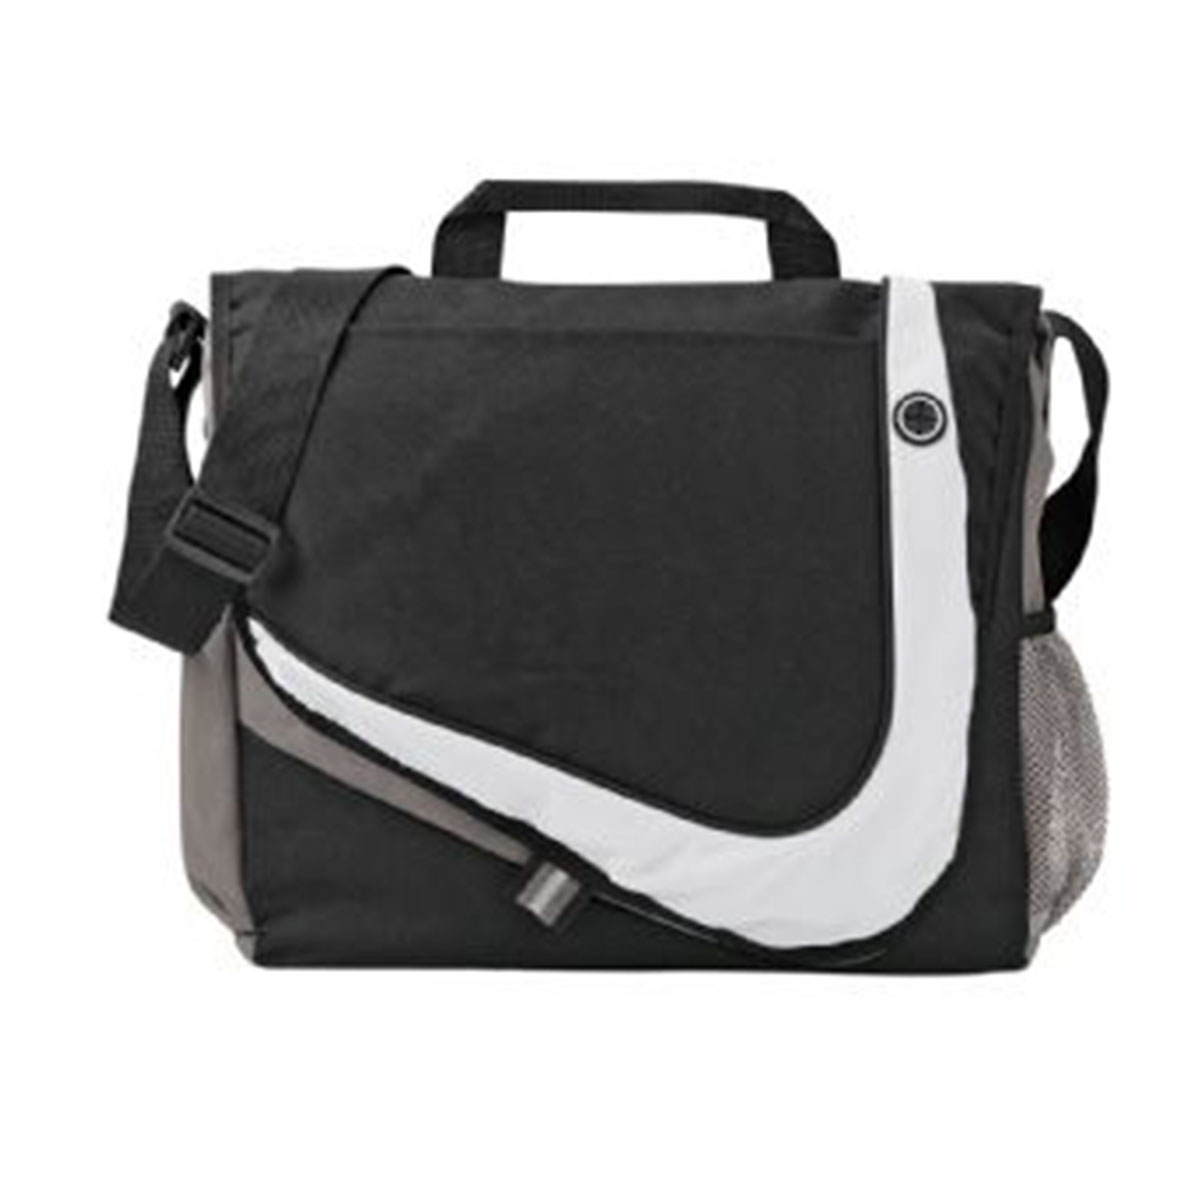 Racer Messenger Bag-Black with Grey and Silver Trim.